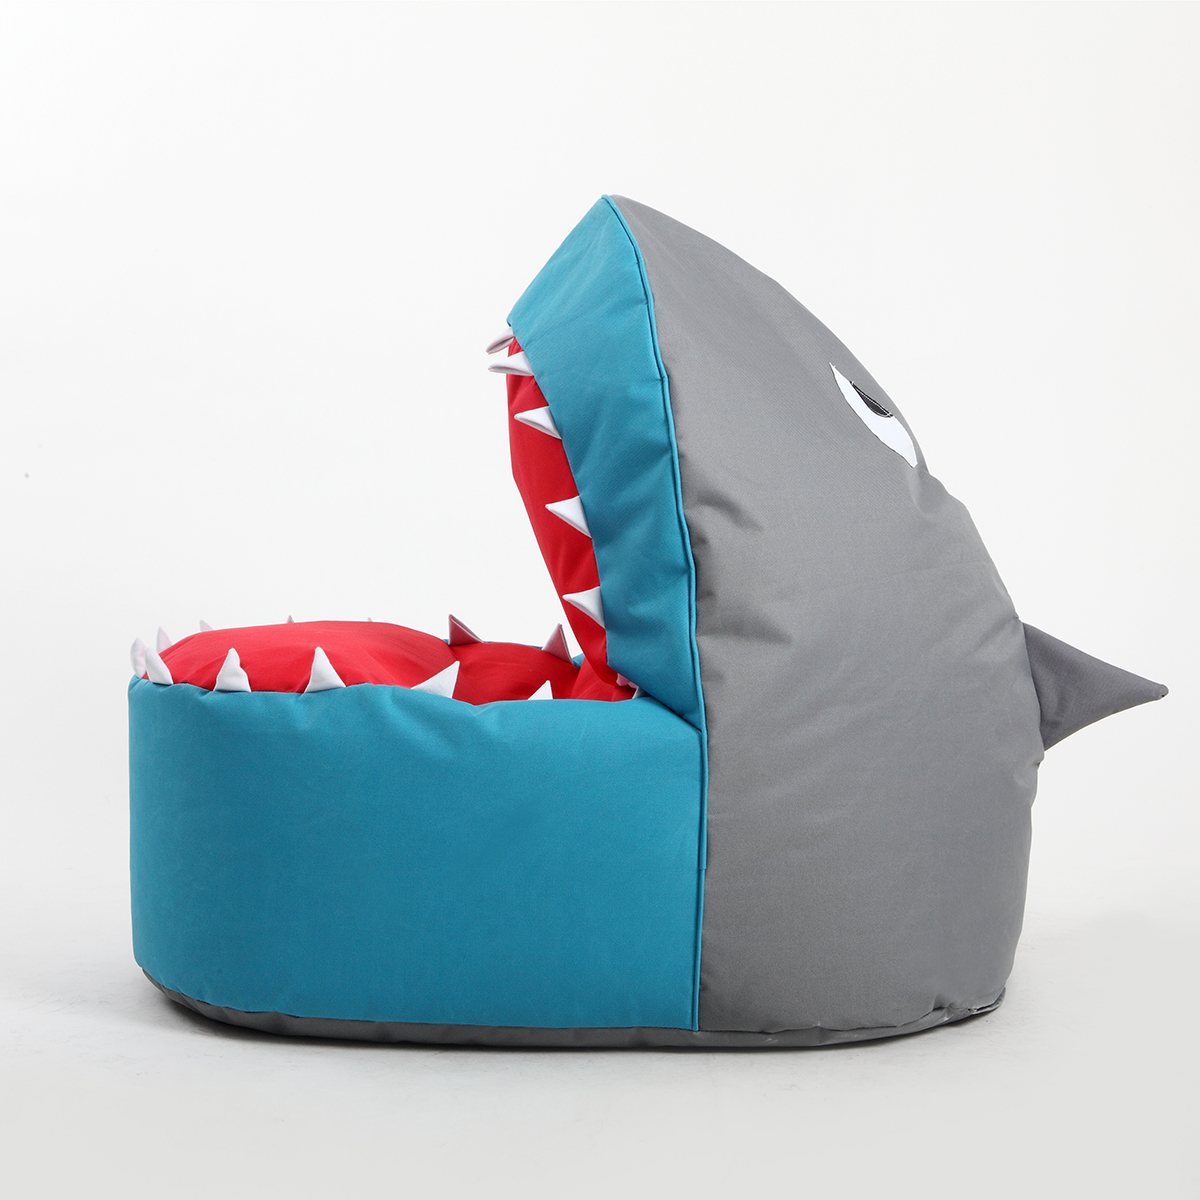 Leisure bean bag chair Sofa children single chair Cartoon Art Shark Lazy Sofa Creative Chair Bed Couch Couch Rice Animal Seat lazy sofa bean bag with pedal creative single sofa bedroom living room lazy stool tatami